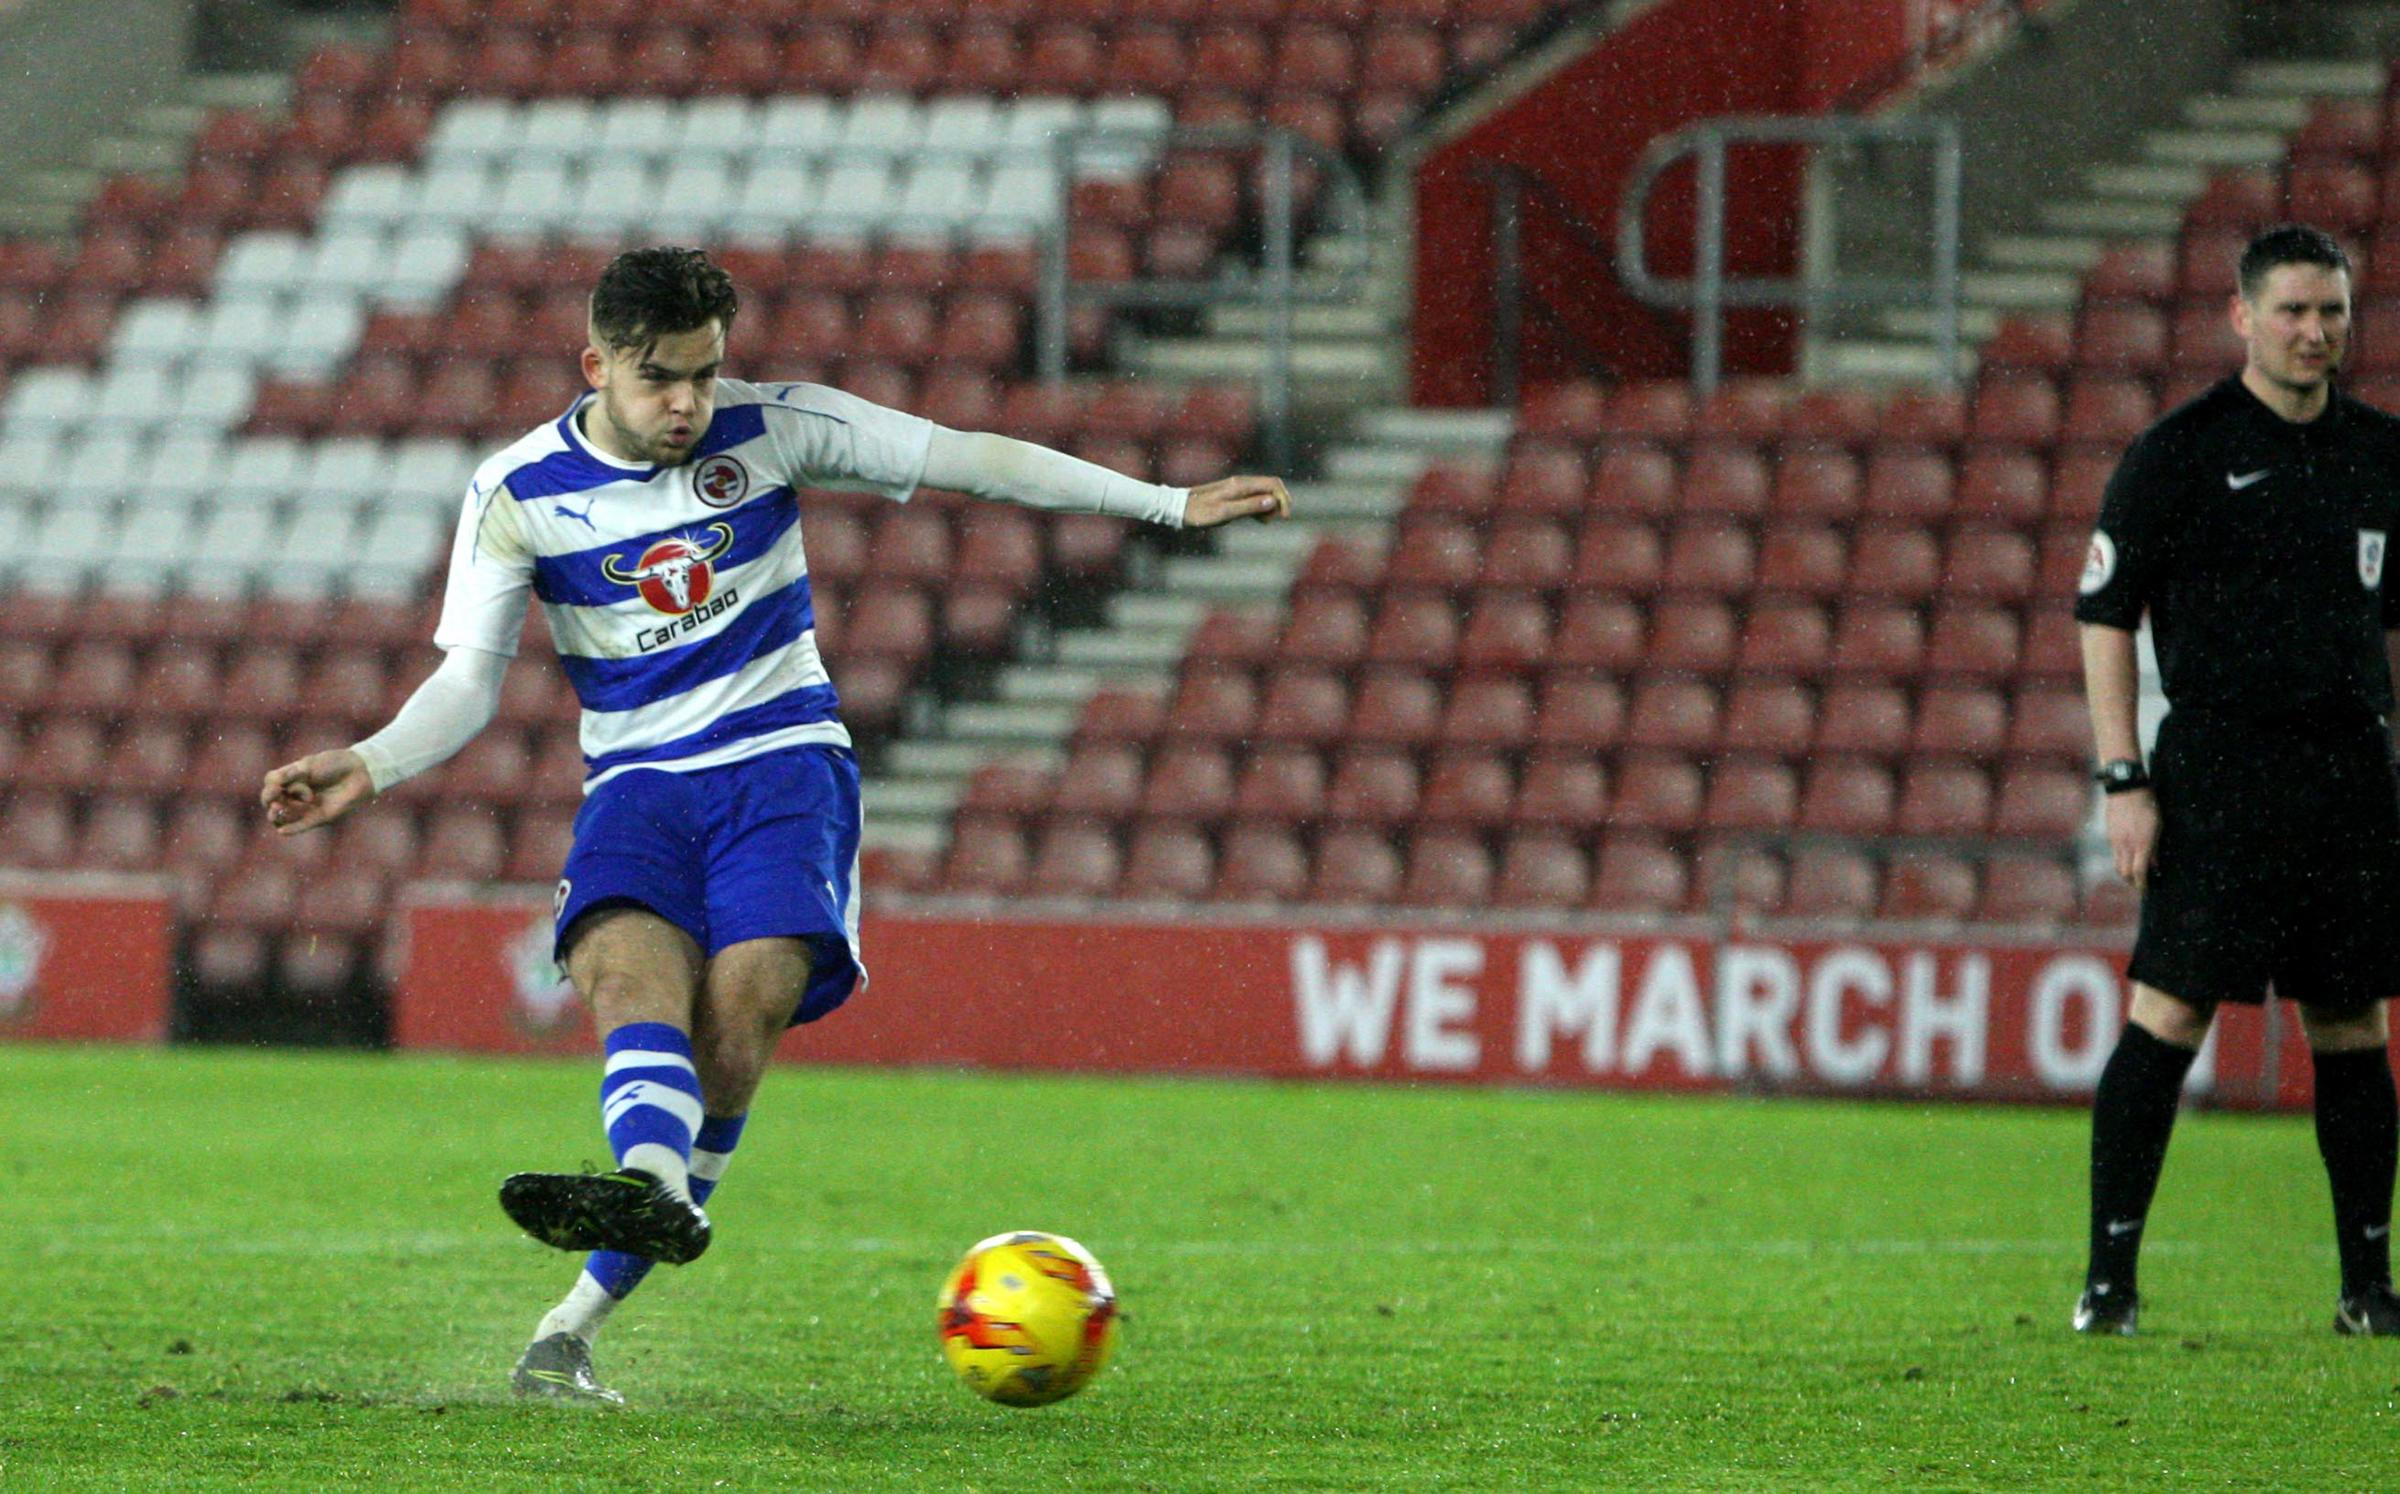 Tyler Frost pulled a goal back late on for Reading Under-23s in the 3-1 defeat against Bayern Munich II in the semi-finals of the Premier League International Cup on Monday.